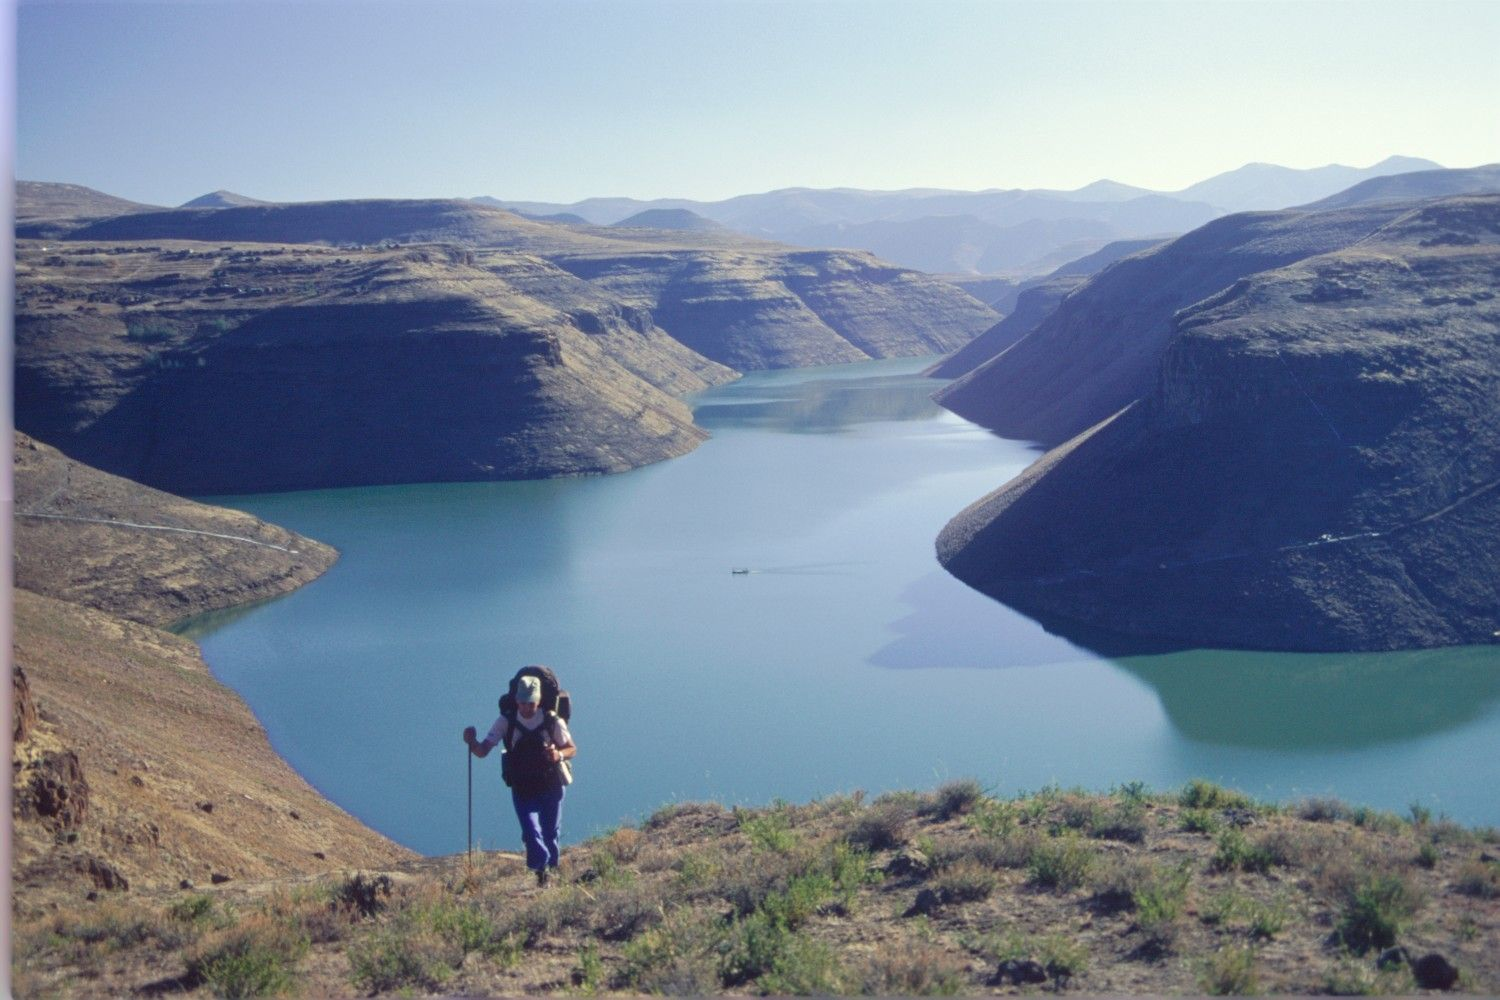 Lesotho google image result for httpmycontinentimglesotho lesotho officially the kingdom of lesotho is a landlocked country and enclave completely surrounded by its only neighboring country the republic of sciox Images